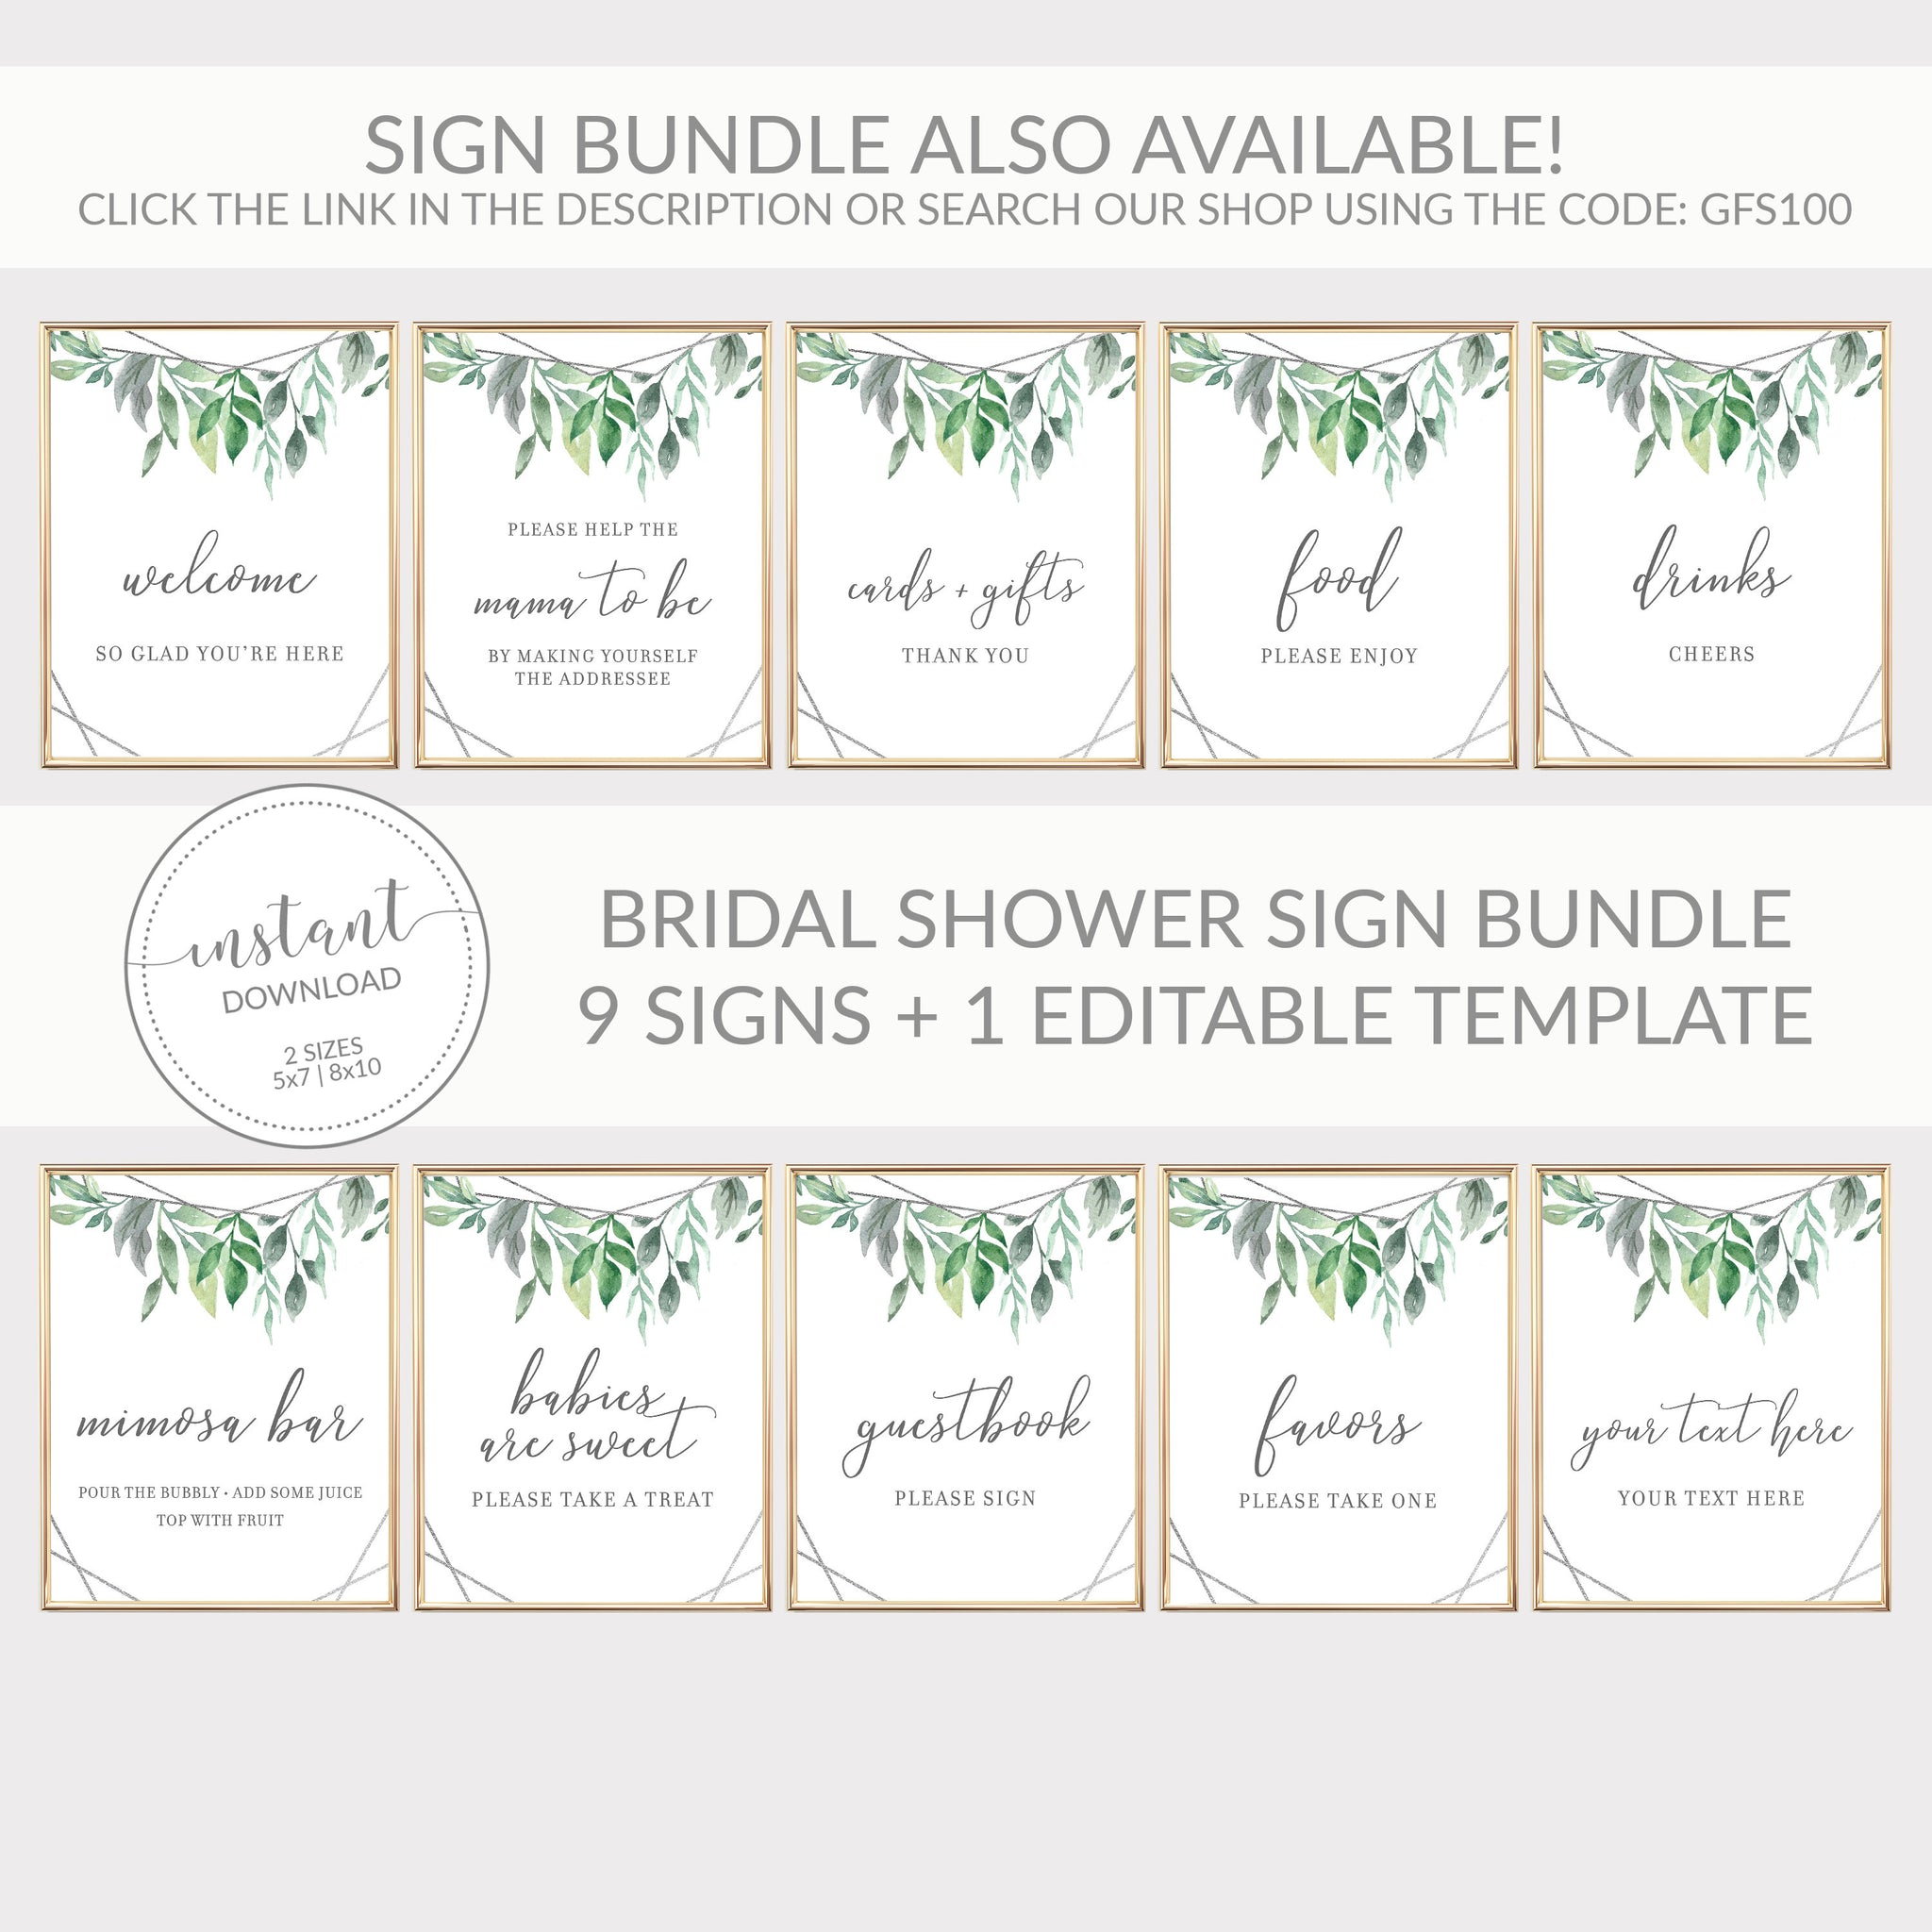 Geometric Silver Greenery Printable Food Sign INSTANT DOWNLOAD, Bridal Shower, Baby Shower, Wedding Decorations and Supplies - GFS100 - @PlumPolkaDot